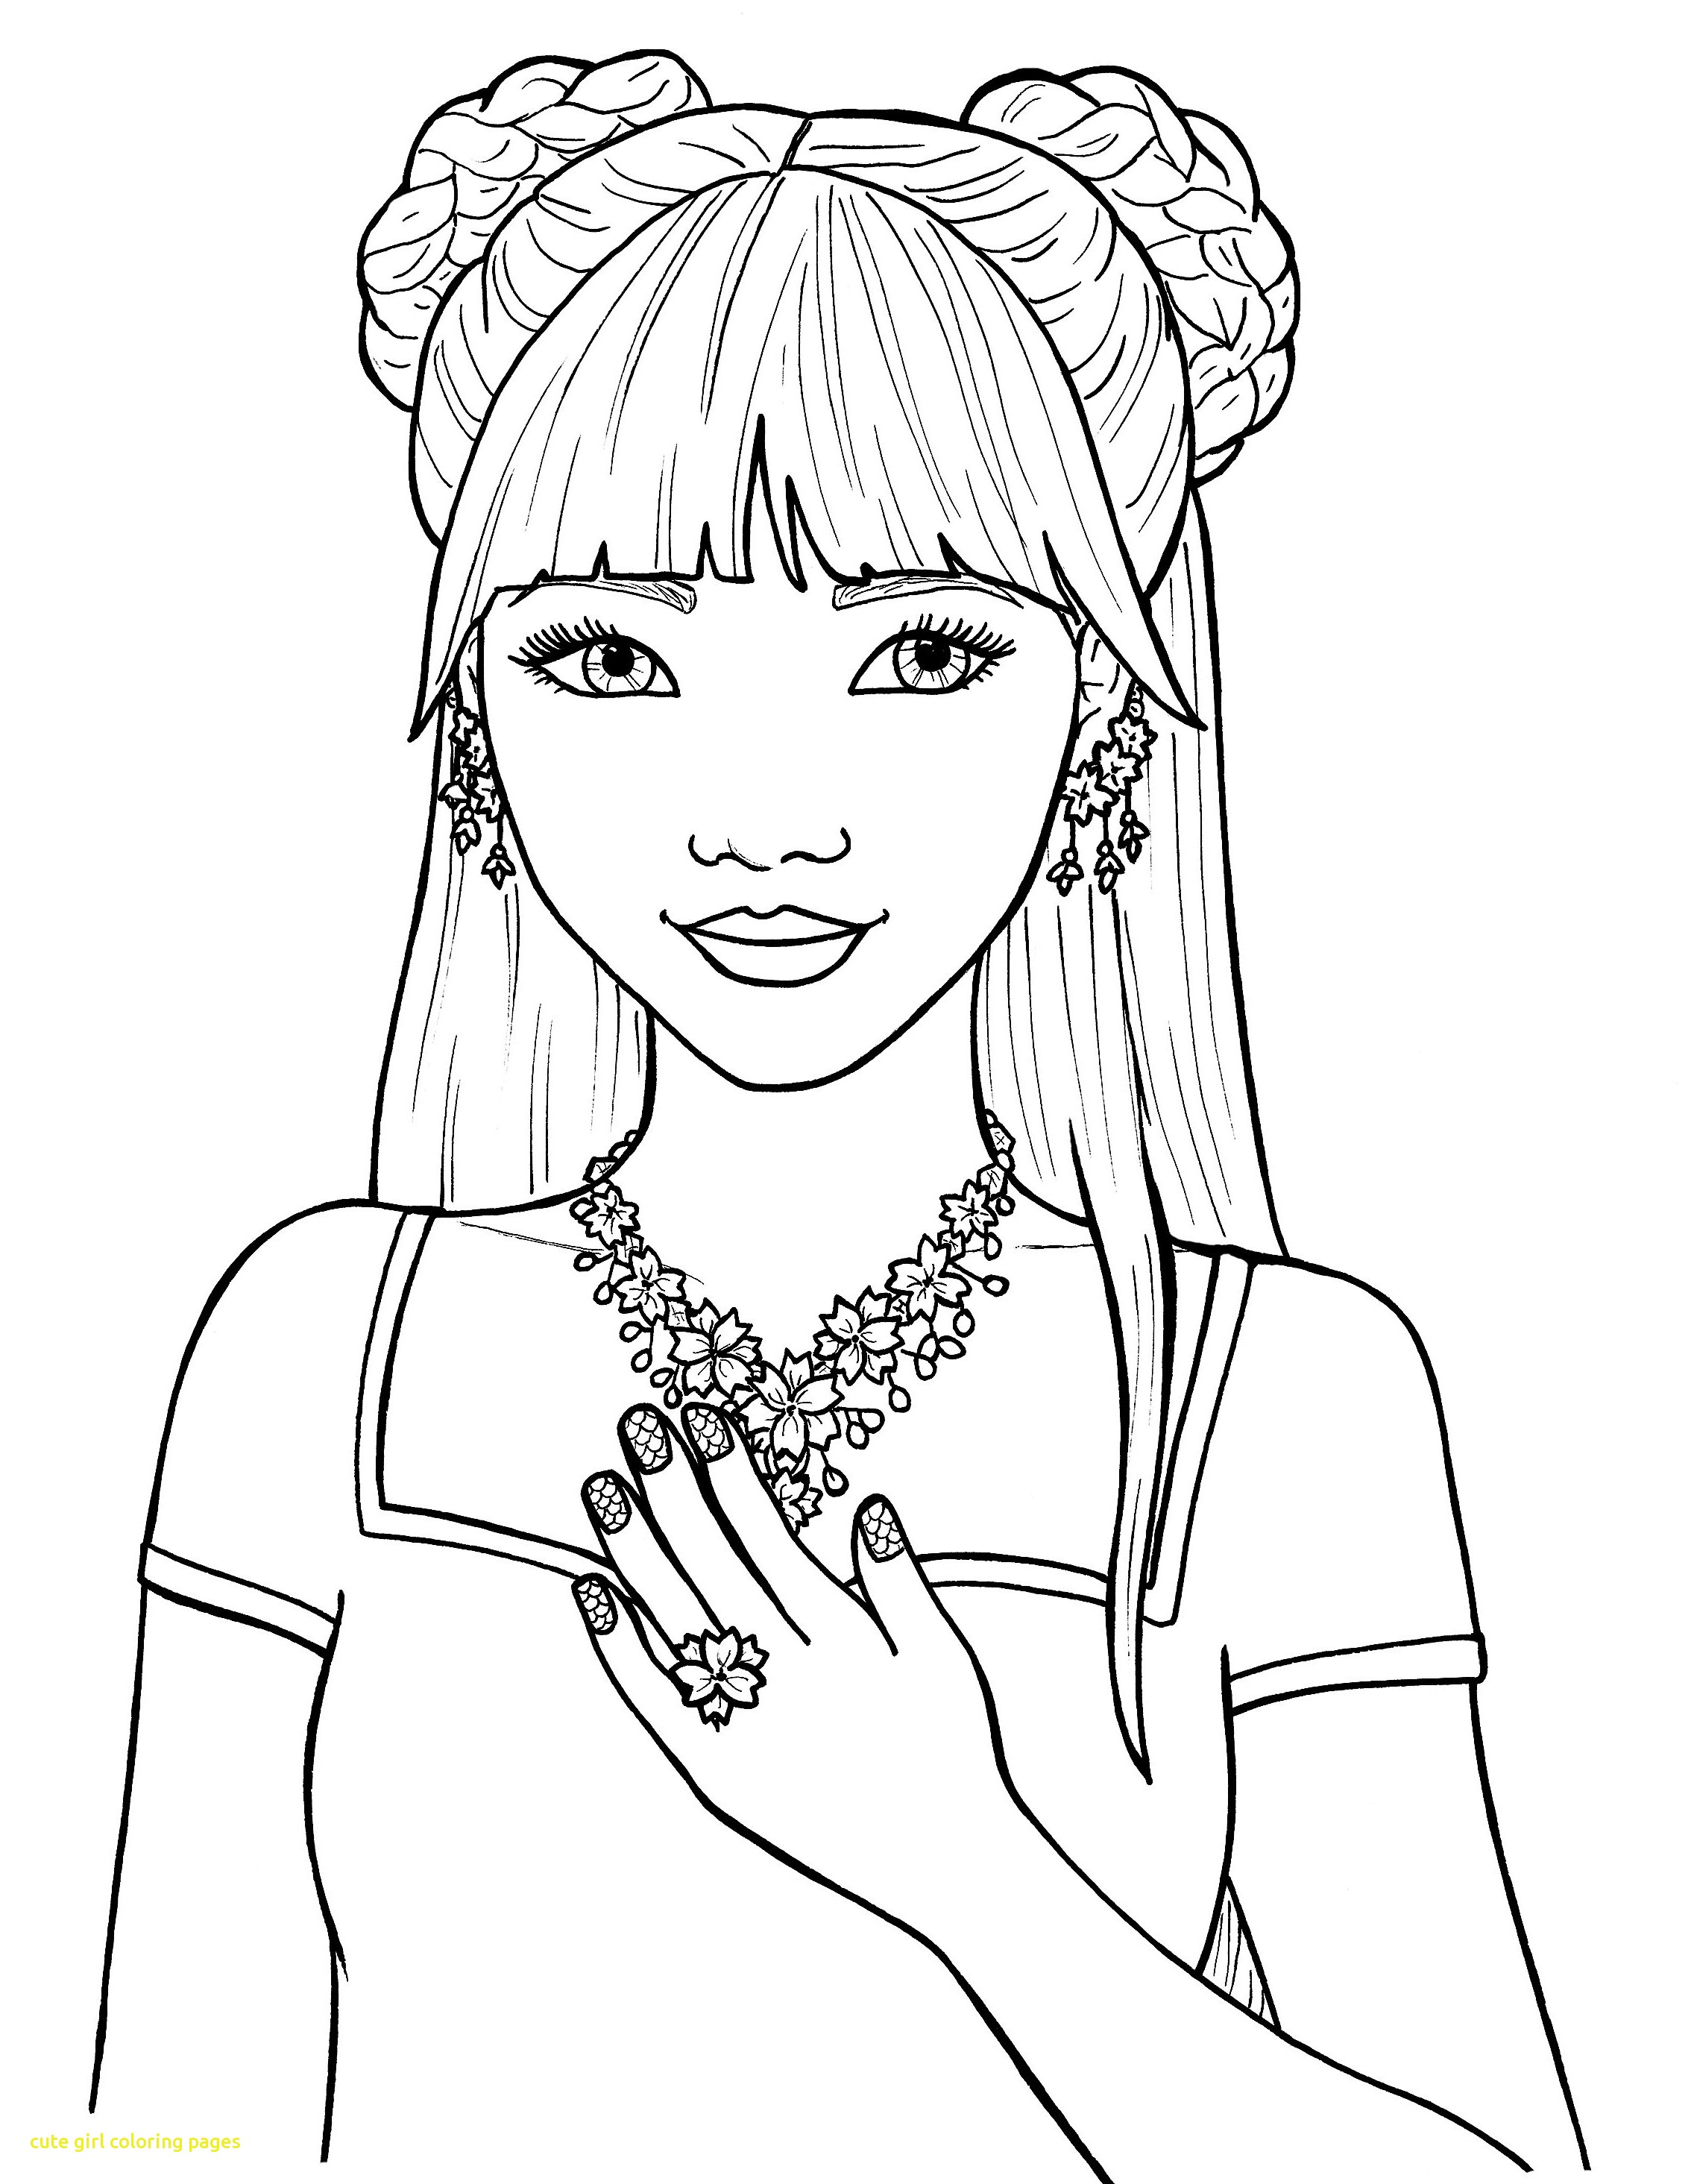 coloring pages for kids online easter color by numbers best coloring pages for kids online pages kids for coloring